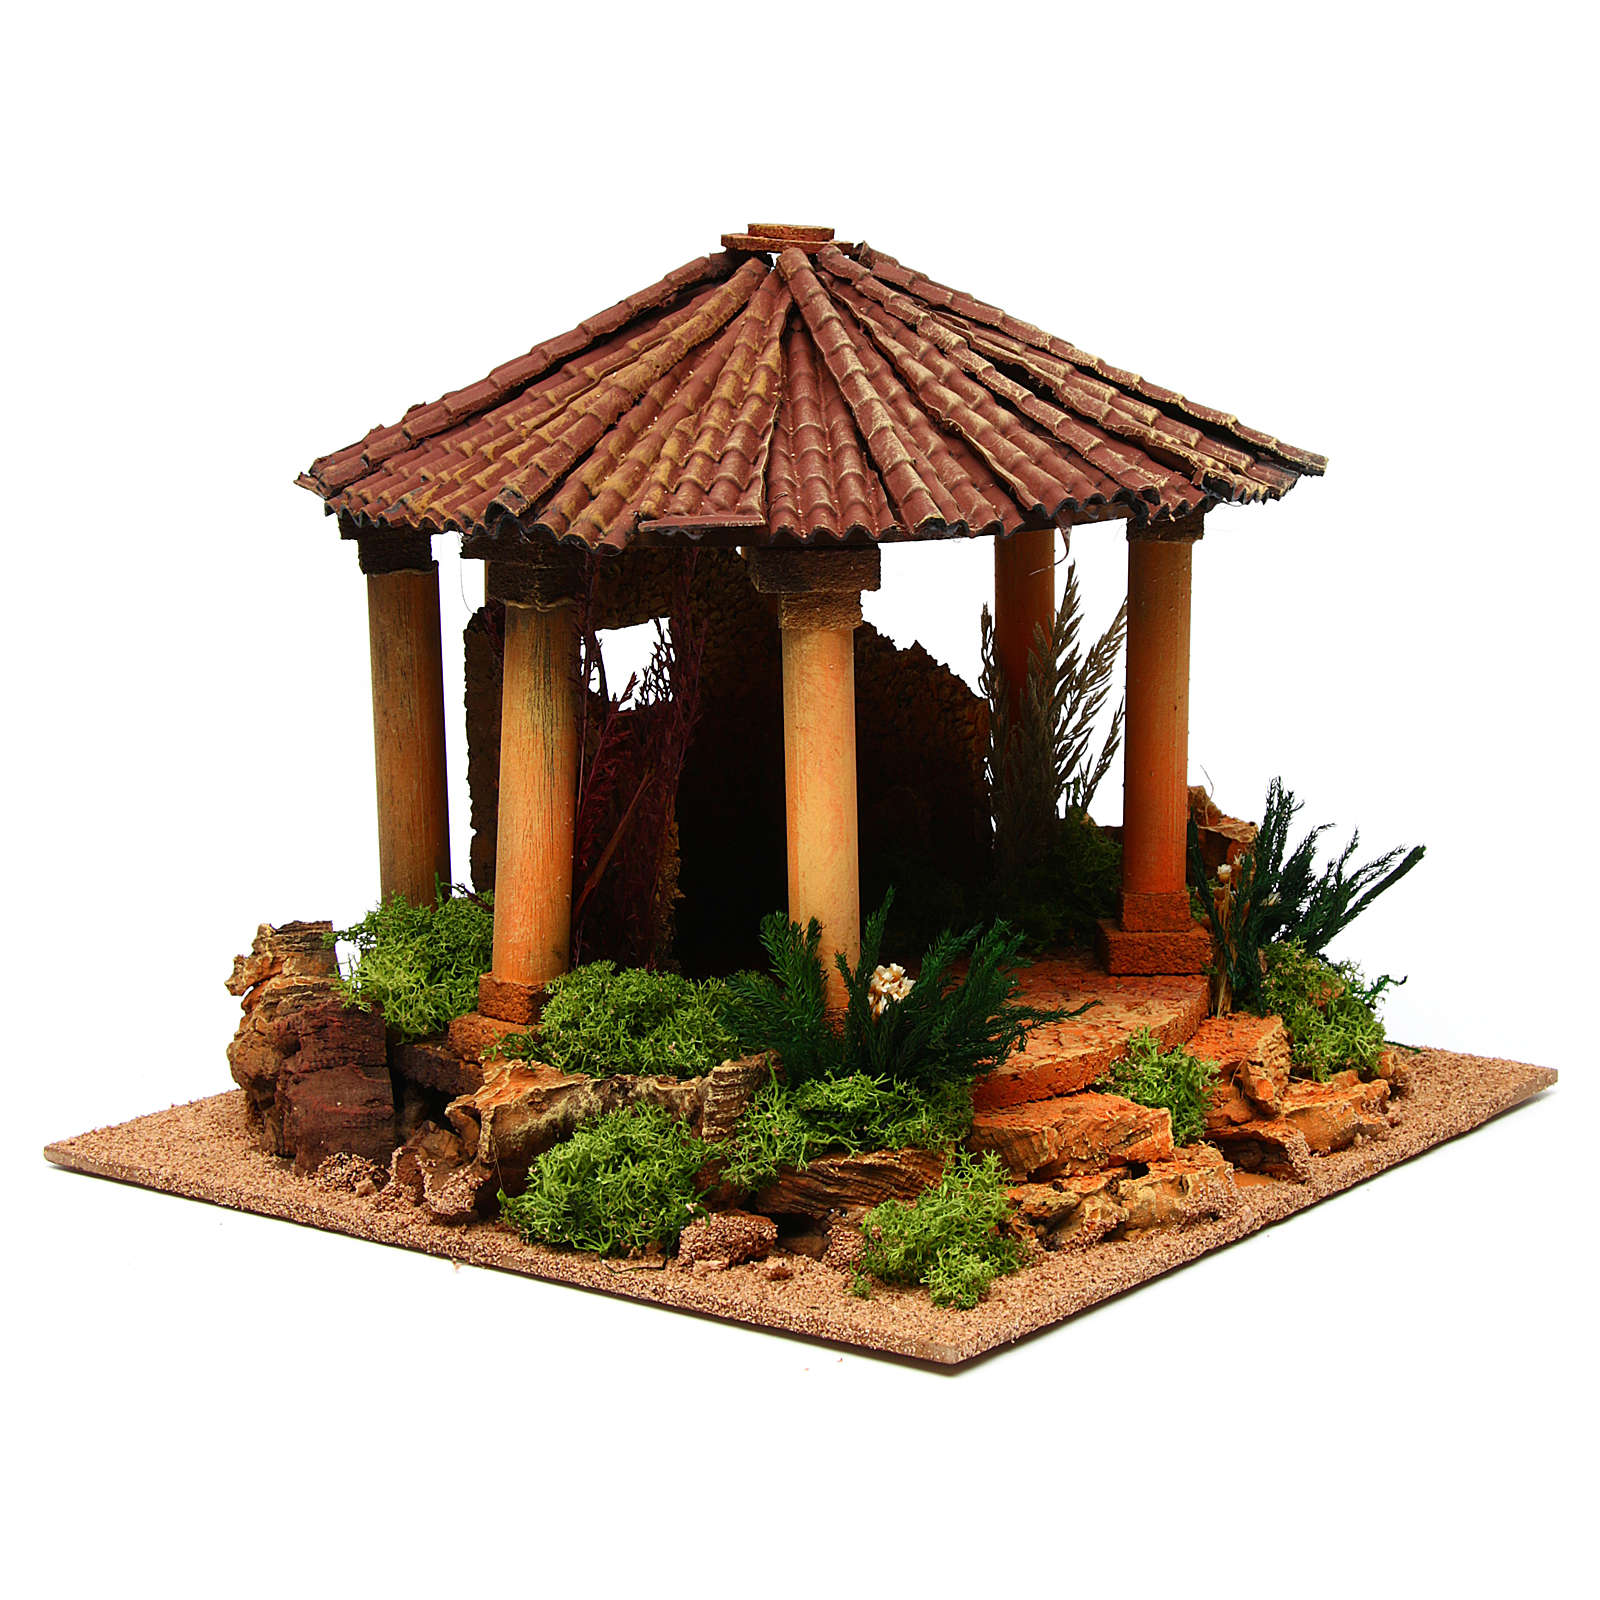 Nativity Setting Roman Temple With Circular Roof Online